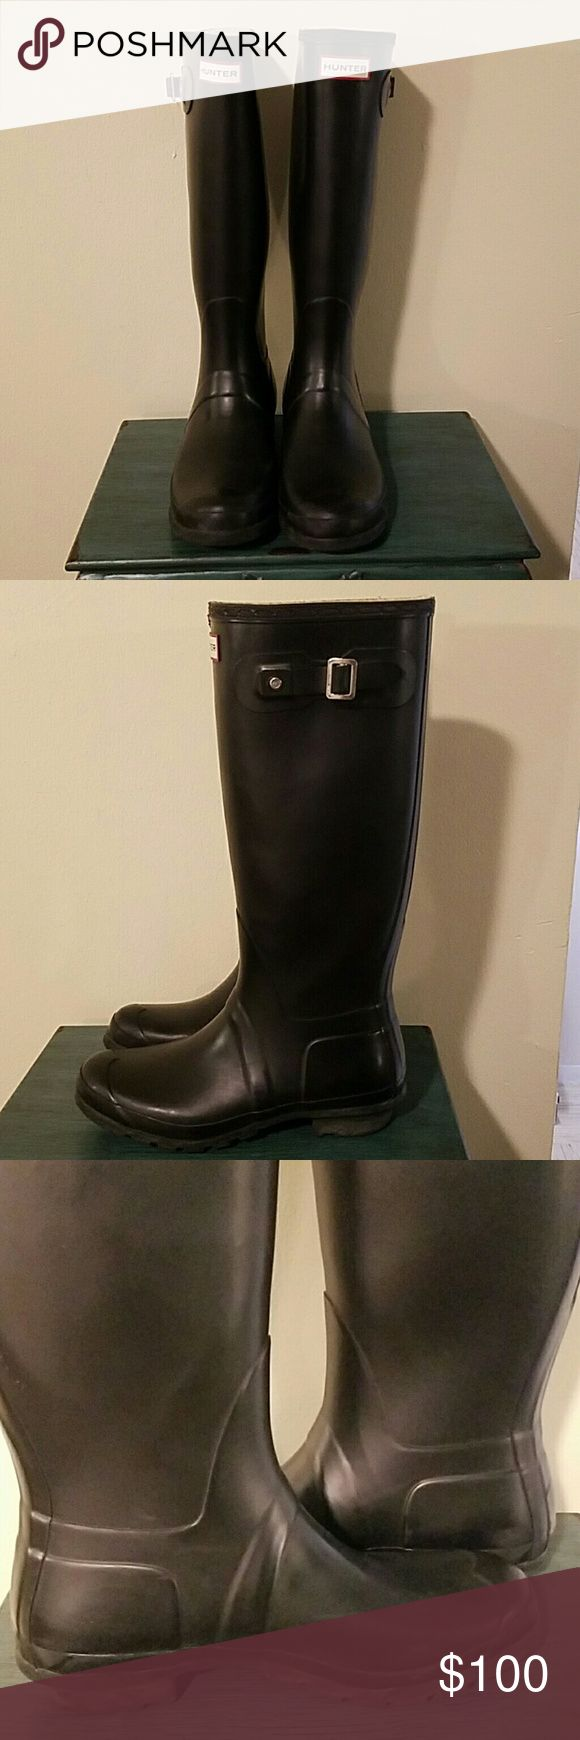 Mens Hunter Boots No Trades!!!! Mens Black original tall Hunter rain Boots!! In Great Pre-owned Condition small scuffs from wear  but other that these are in Great Condition!! Hunter Shoes Boots